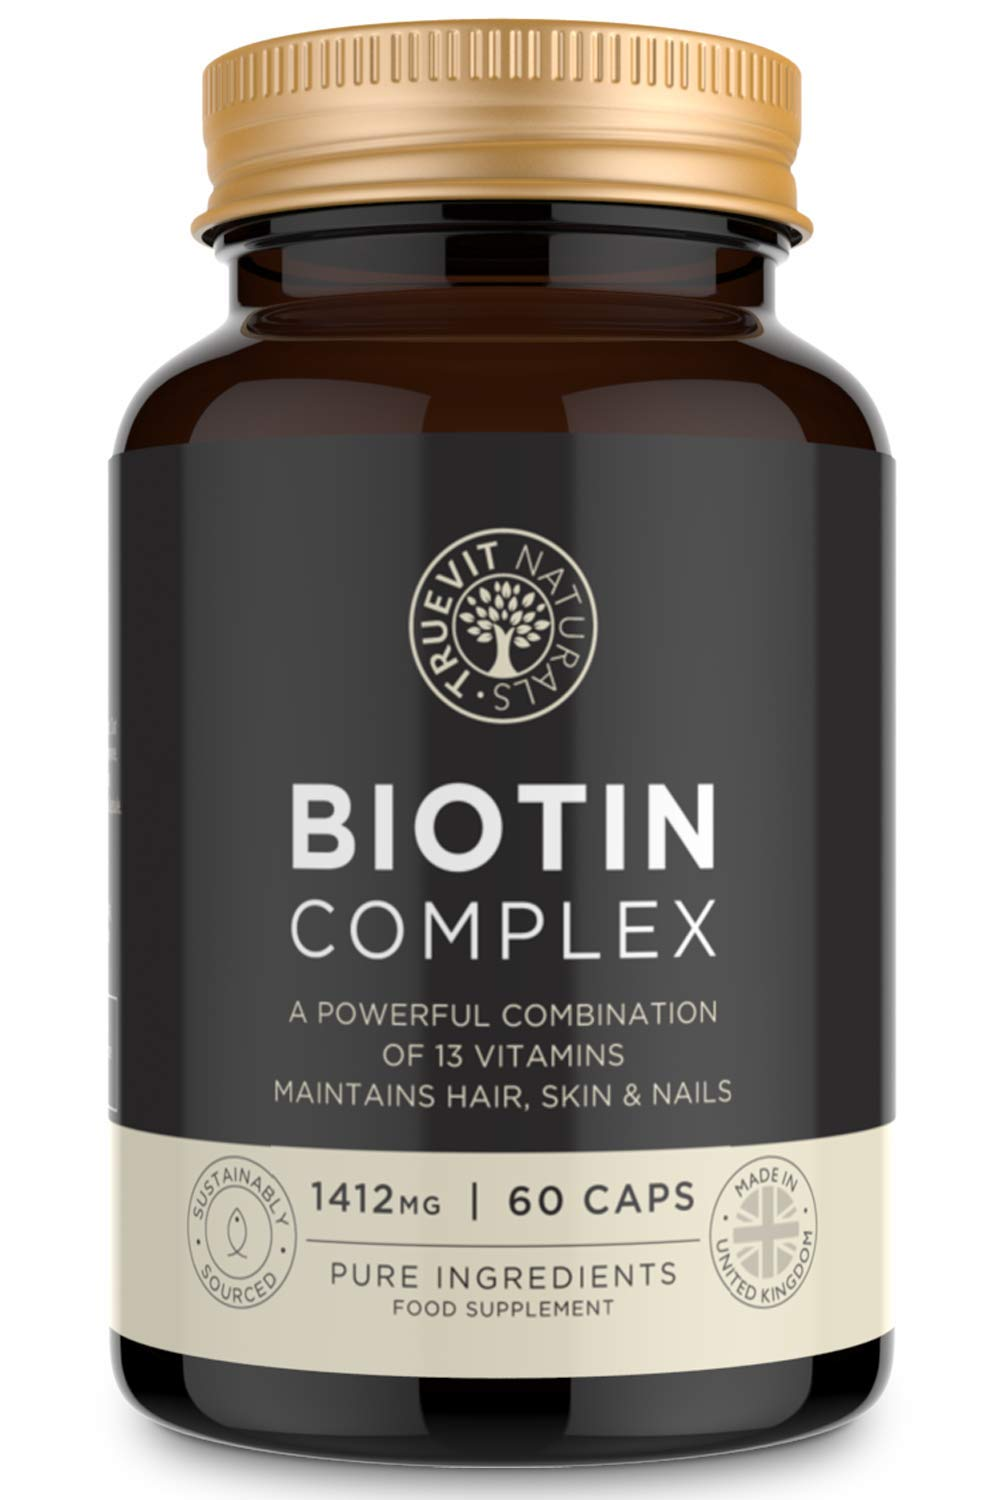 Complex Biotin Hair Growth Supplement - A Powerful Combination of Biotin with Added 13 Hair Boosting Amino Acids, Vitamins and Minerals for Hair Skin and Nails - 60 Capsules WClub Limited